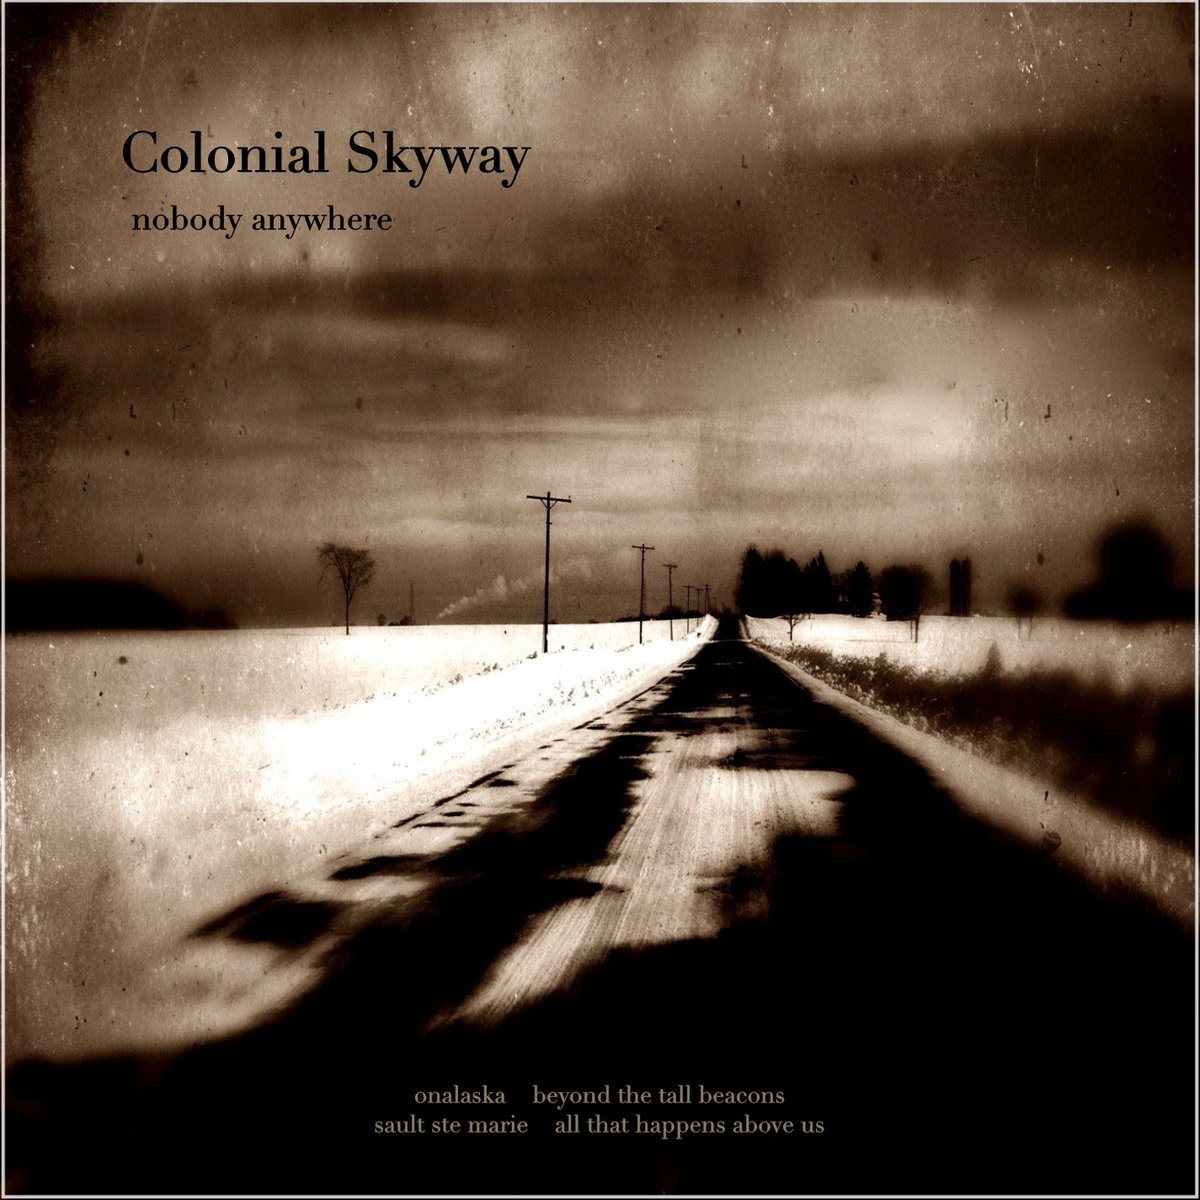 Colonial Skyway on Twitter: